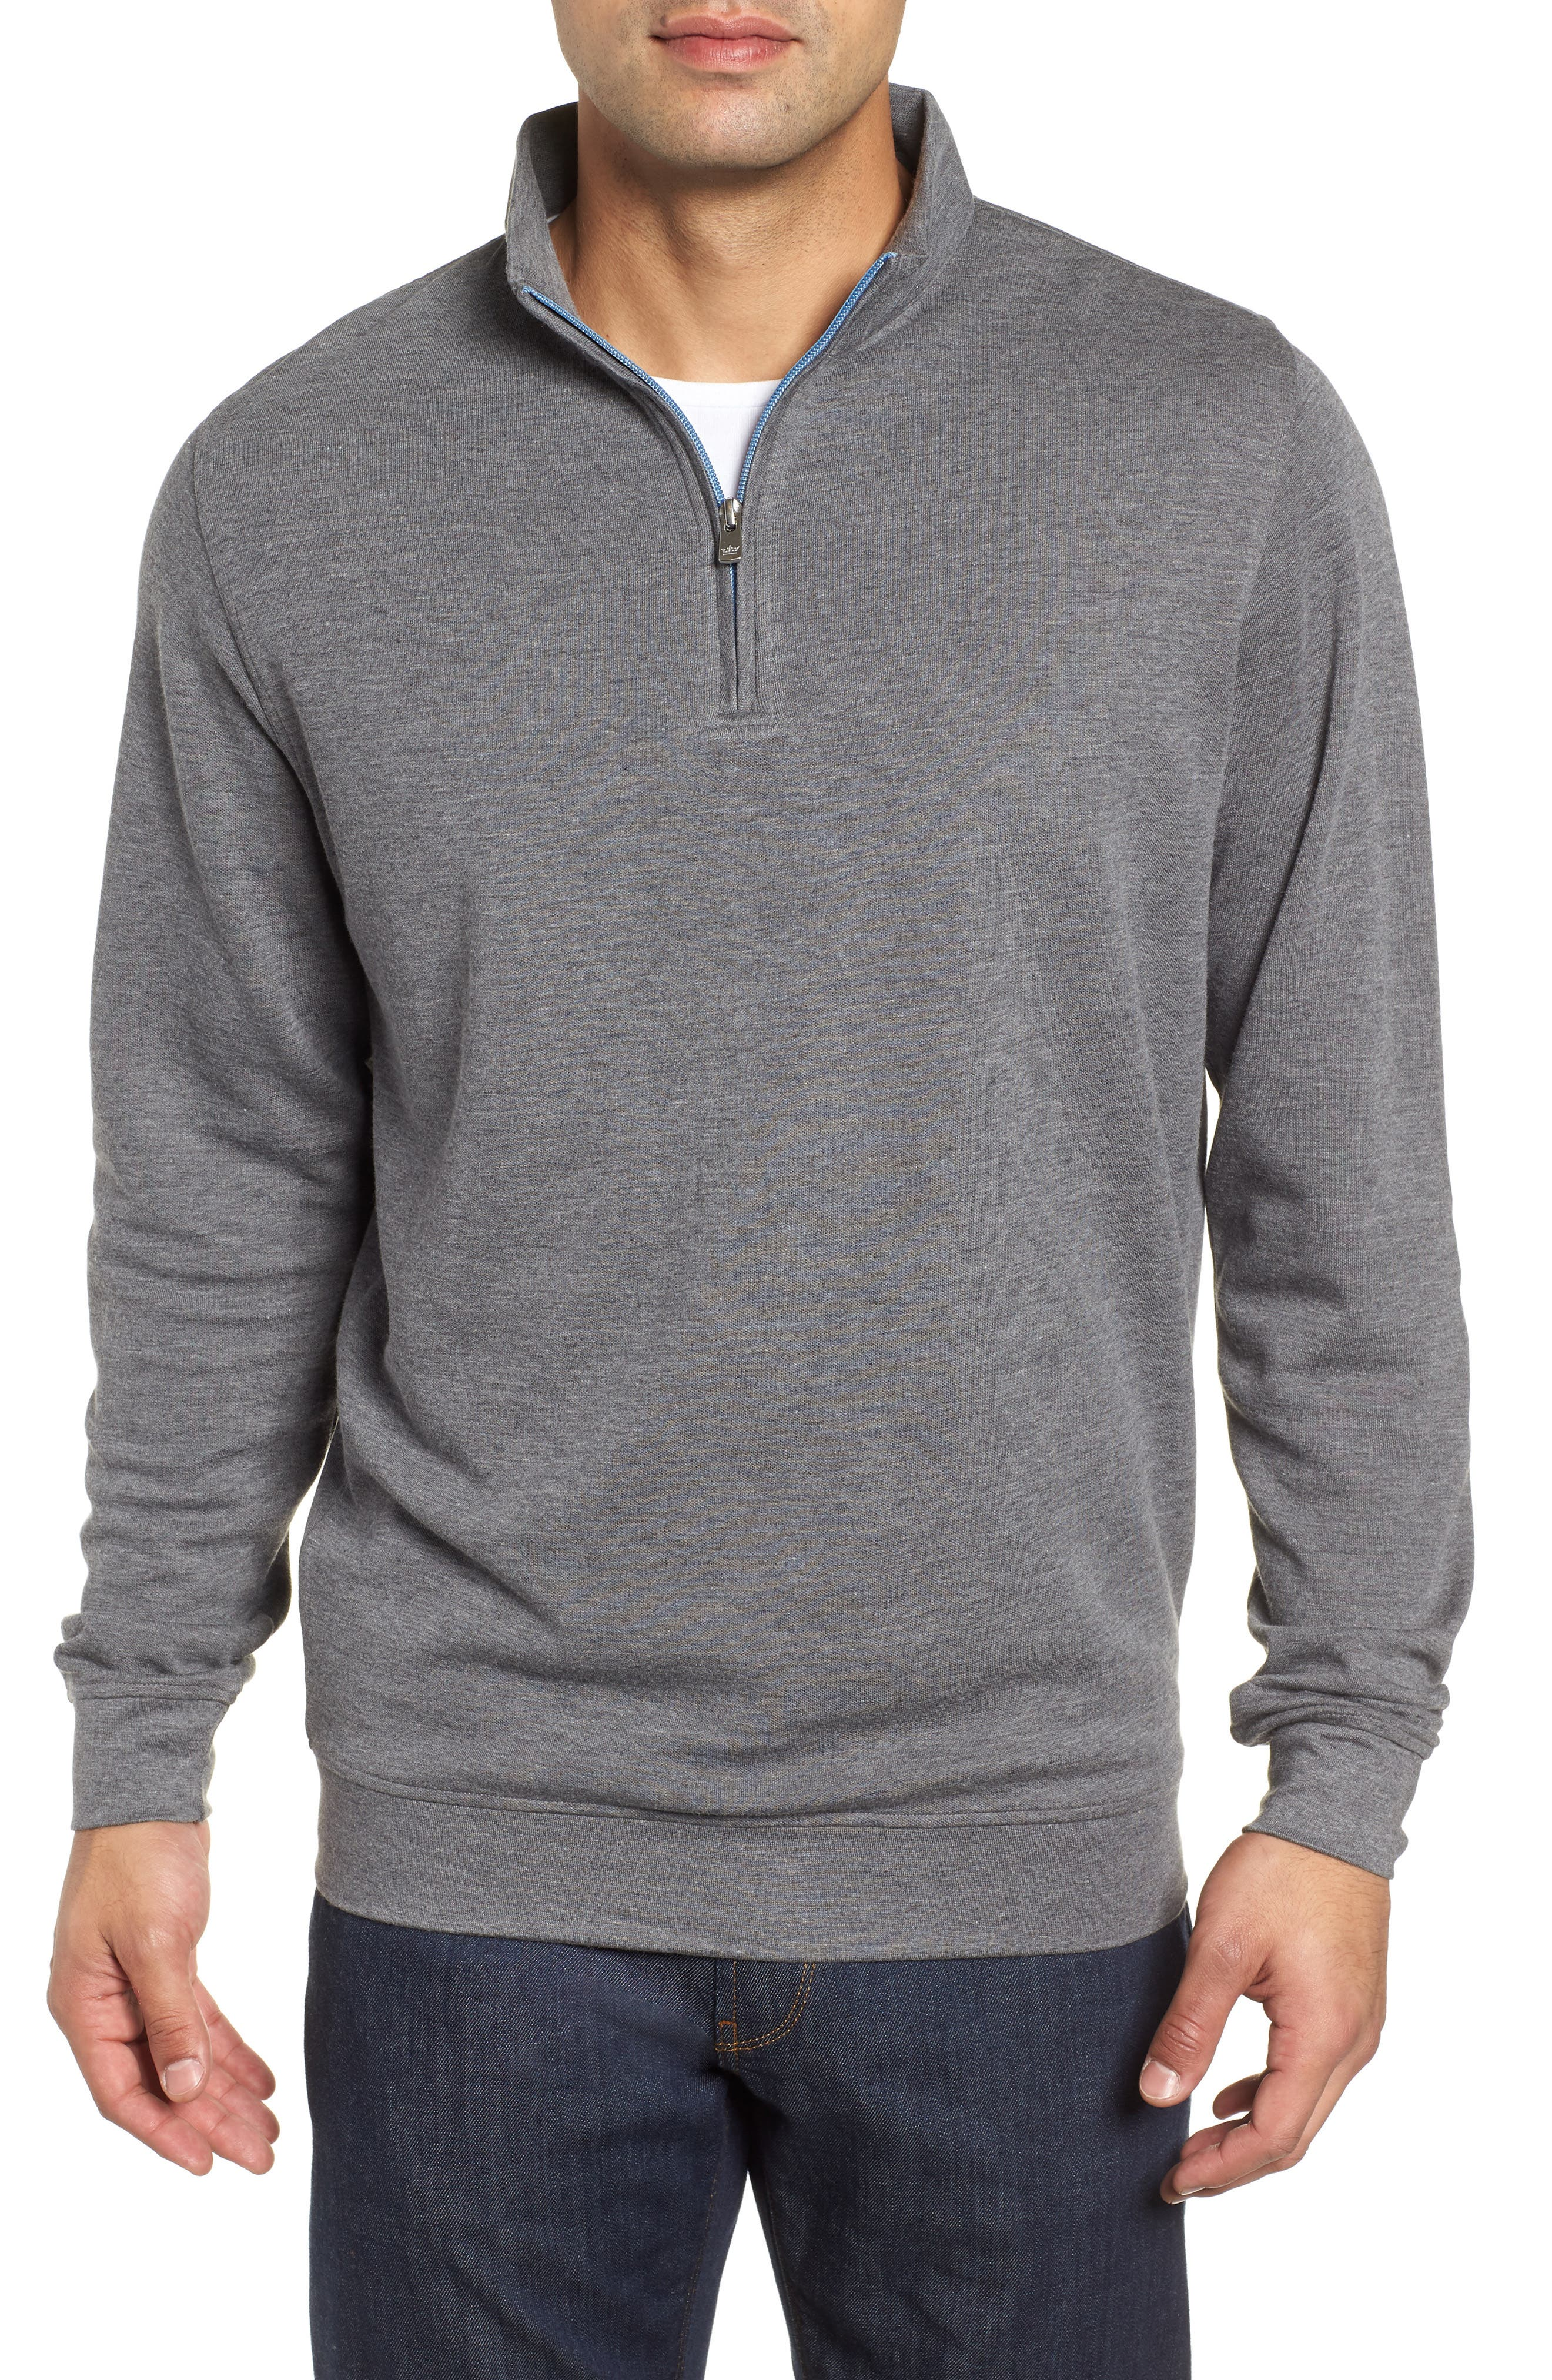 Crown Comfort Jersey Quarter Zip Pullover,                             Main thumbnail 1, color,                             CHARCOAL